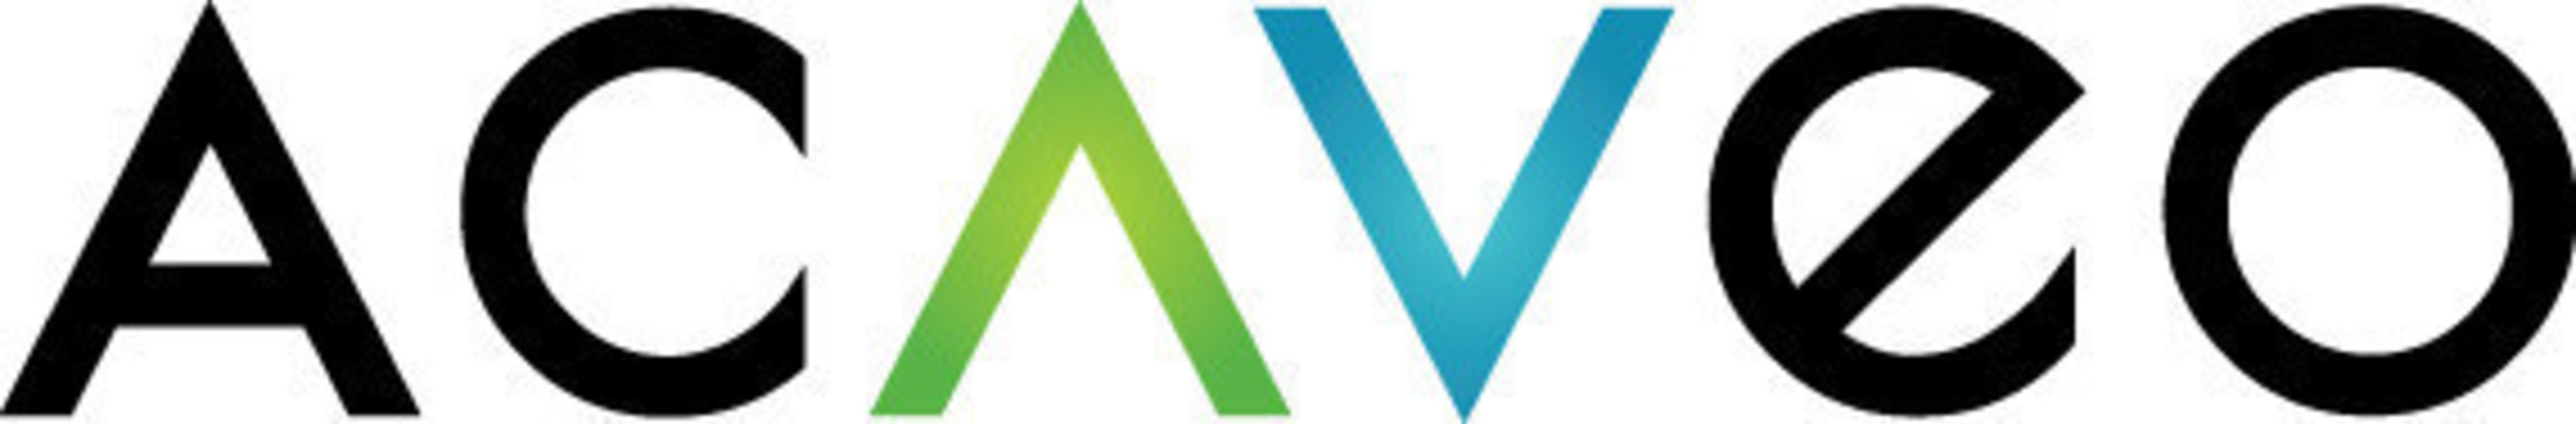 Acaveo Releases Enhanced File Analysis Software Suite for Managing Unstructured Data